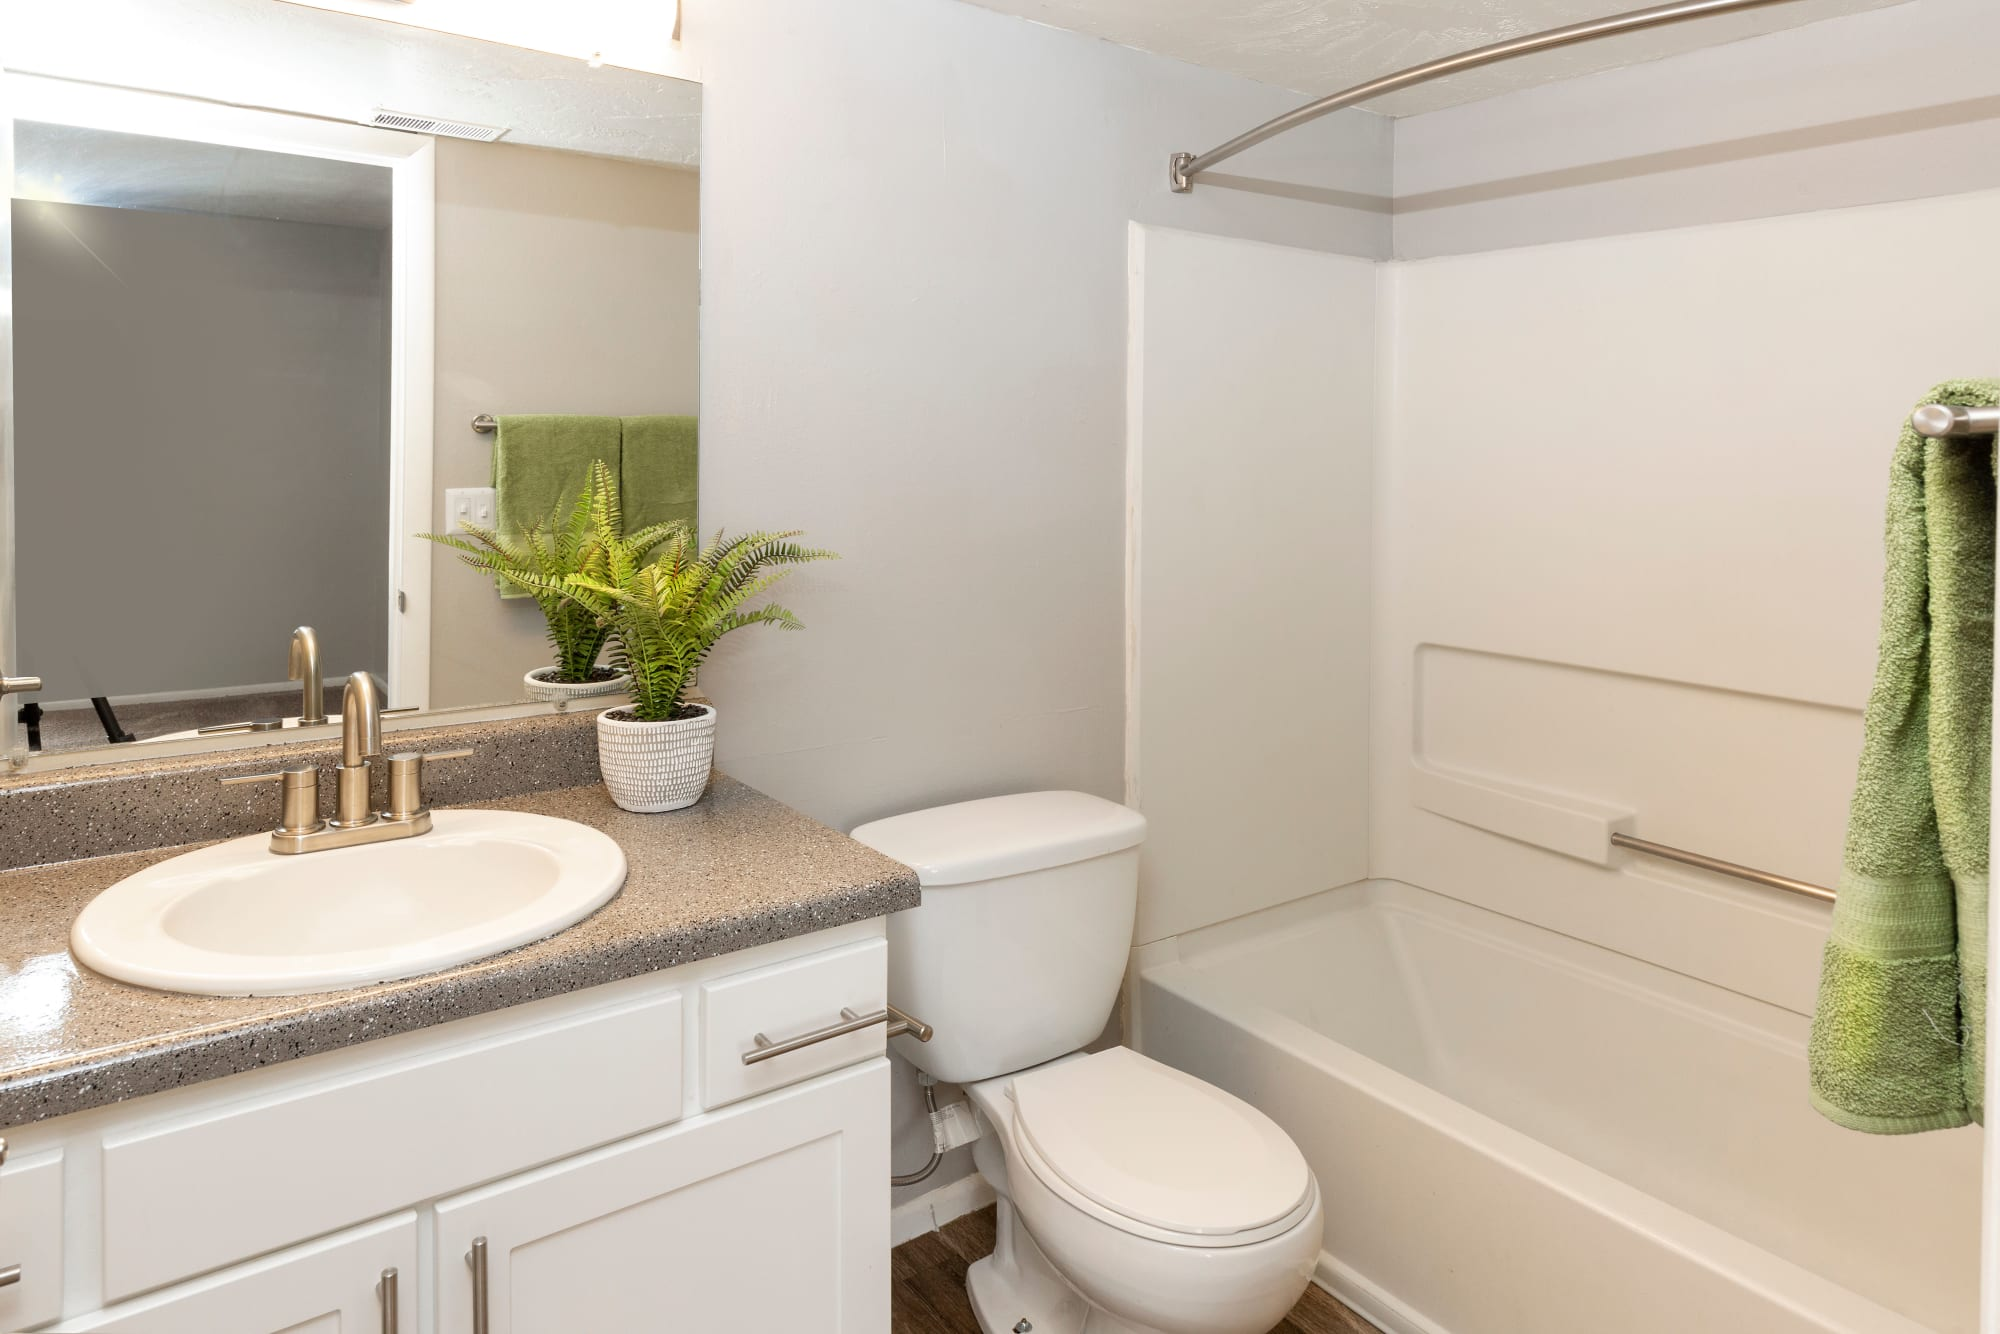 Renovated bathroom with white cabinets and a tub at Windgate Apartments in Bountiful, Utah